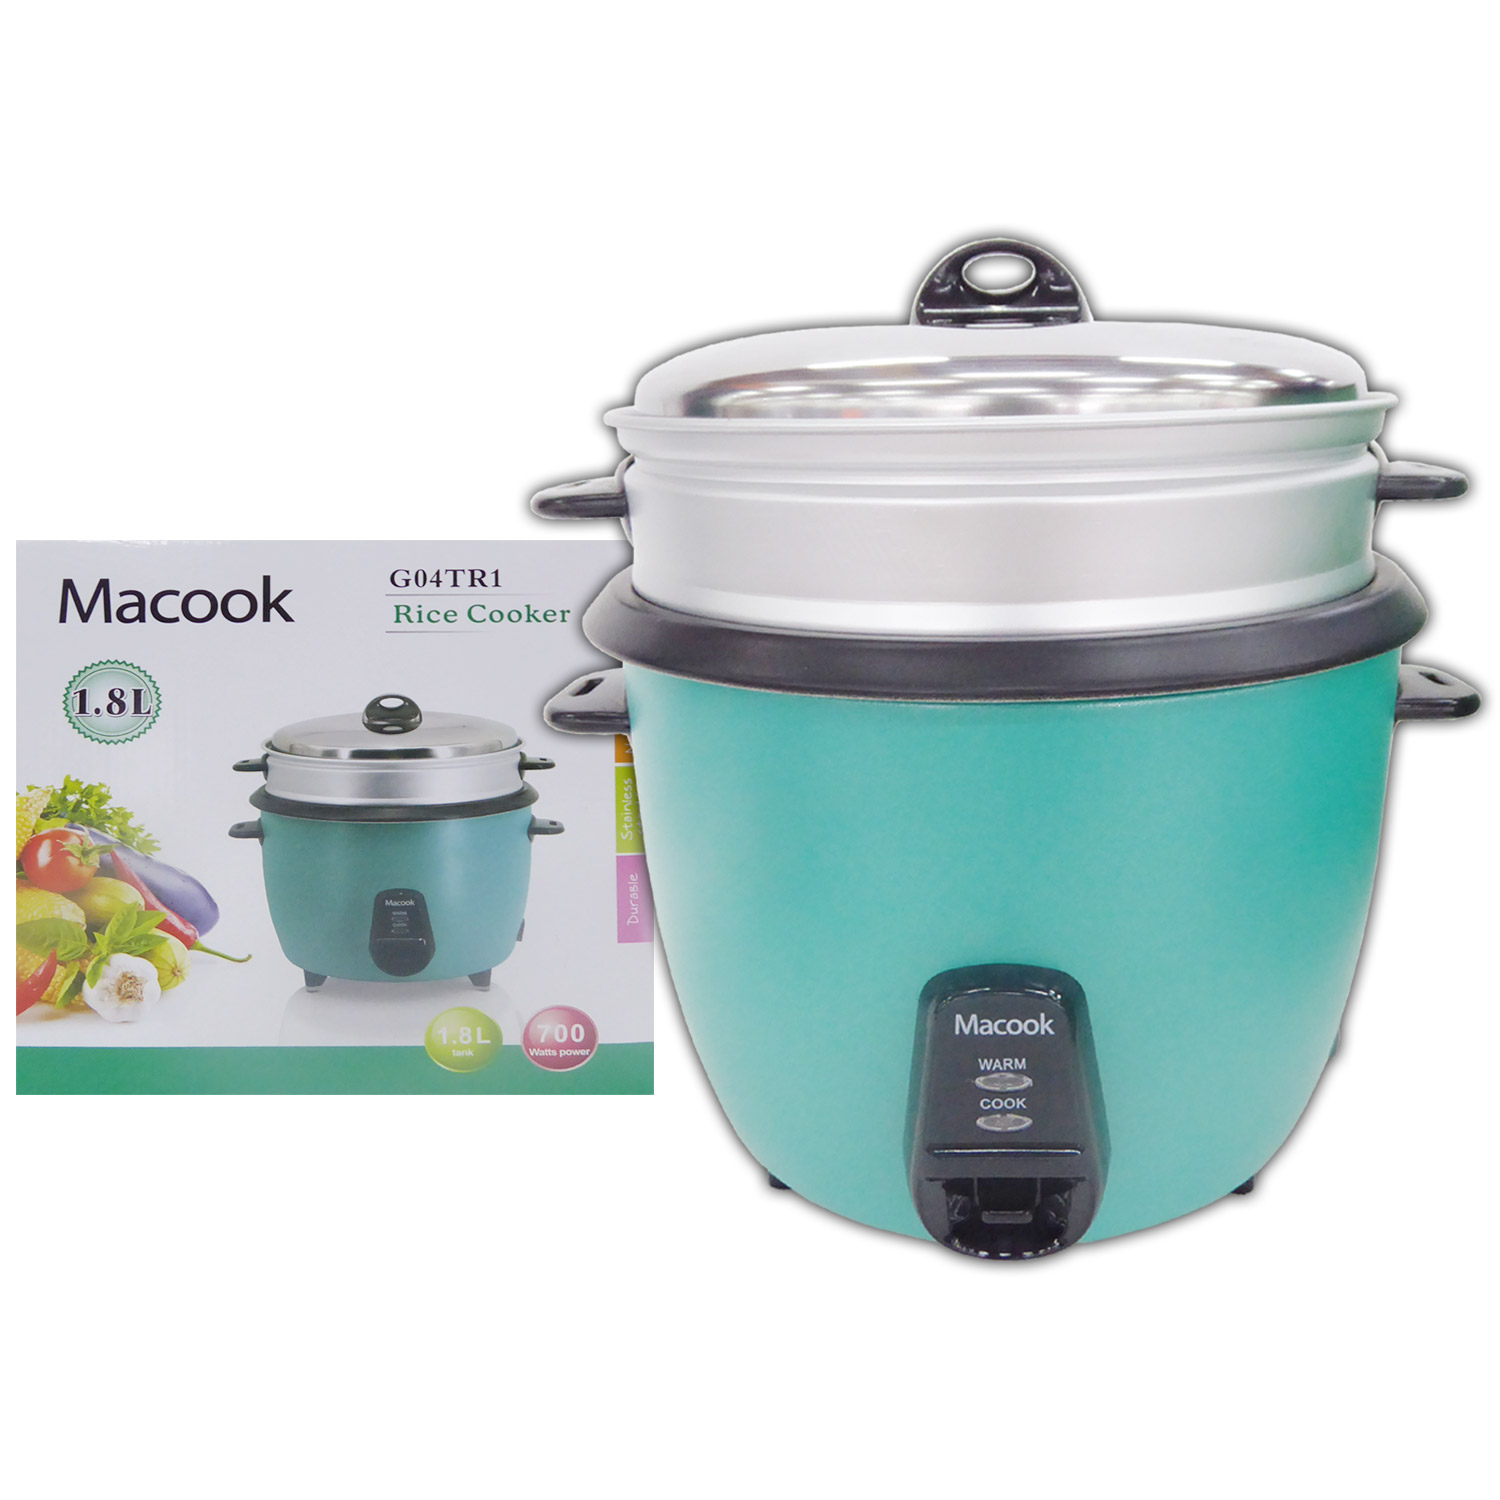 Macook Rice Cooker with Steamer - 1.8Ltr - 10 cups